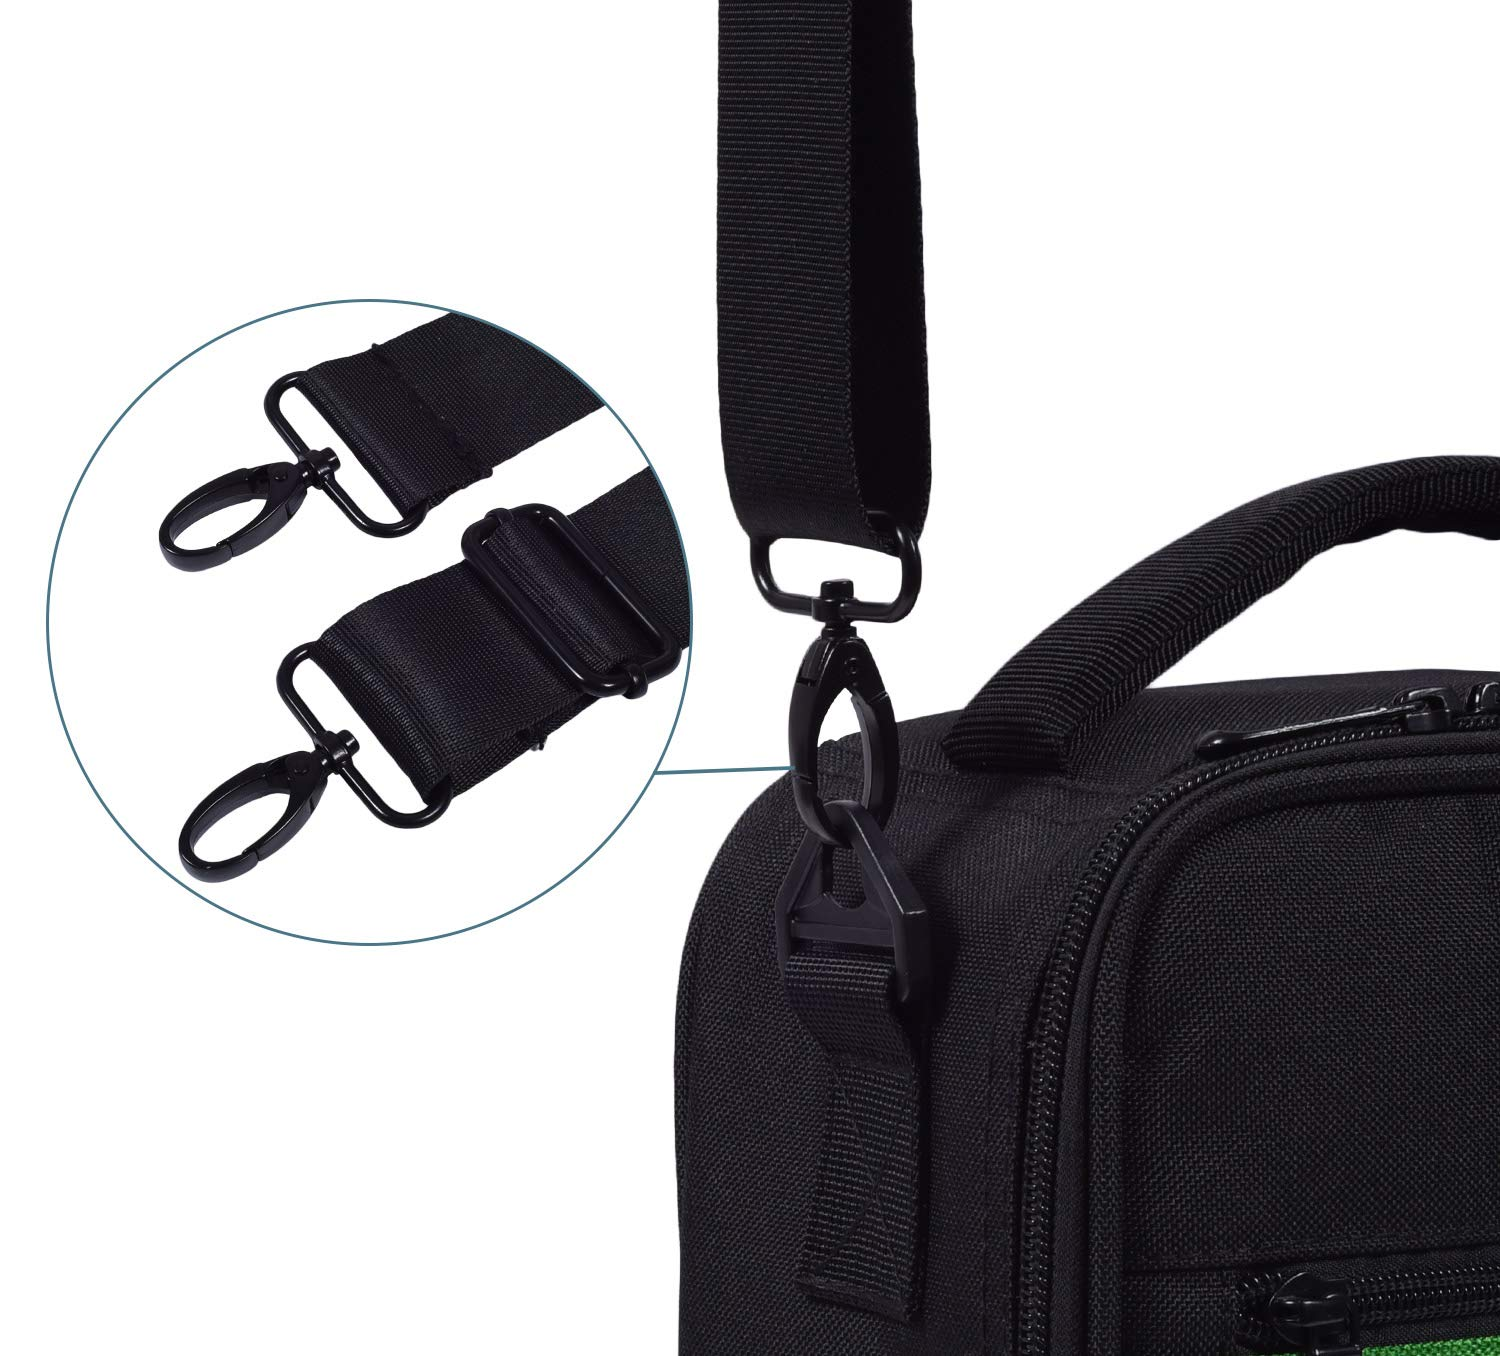 Universal Shoulder Strap Replacement Luggage Duffle Bag Strap Detachable Soft Padded Adjustable Belt with Metal Swivel Hooks Compatible Duffel Briefcase Computer Bags Laptop Case Messenger Bag, Black by CaseBuy (Image #6)